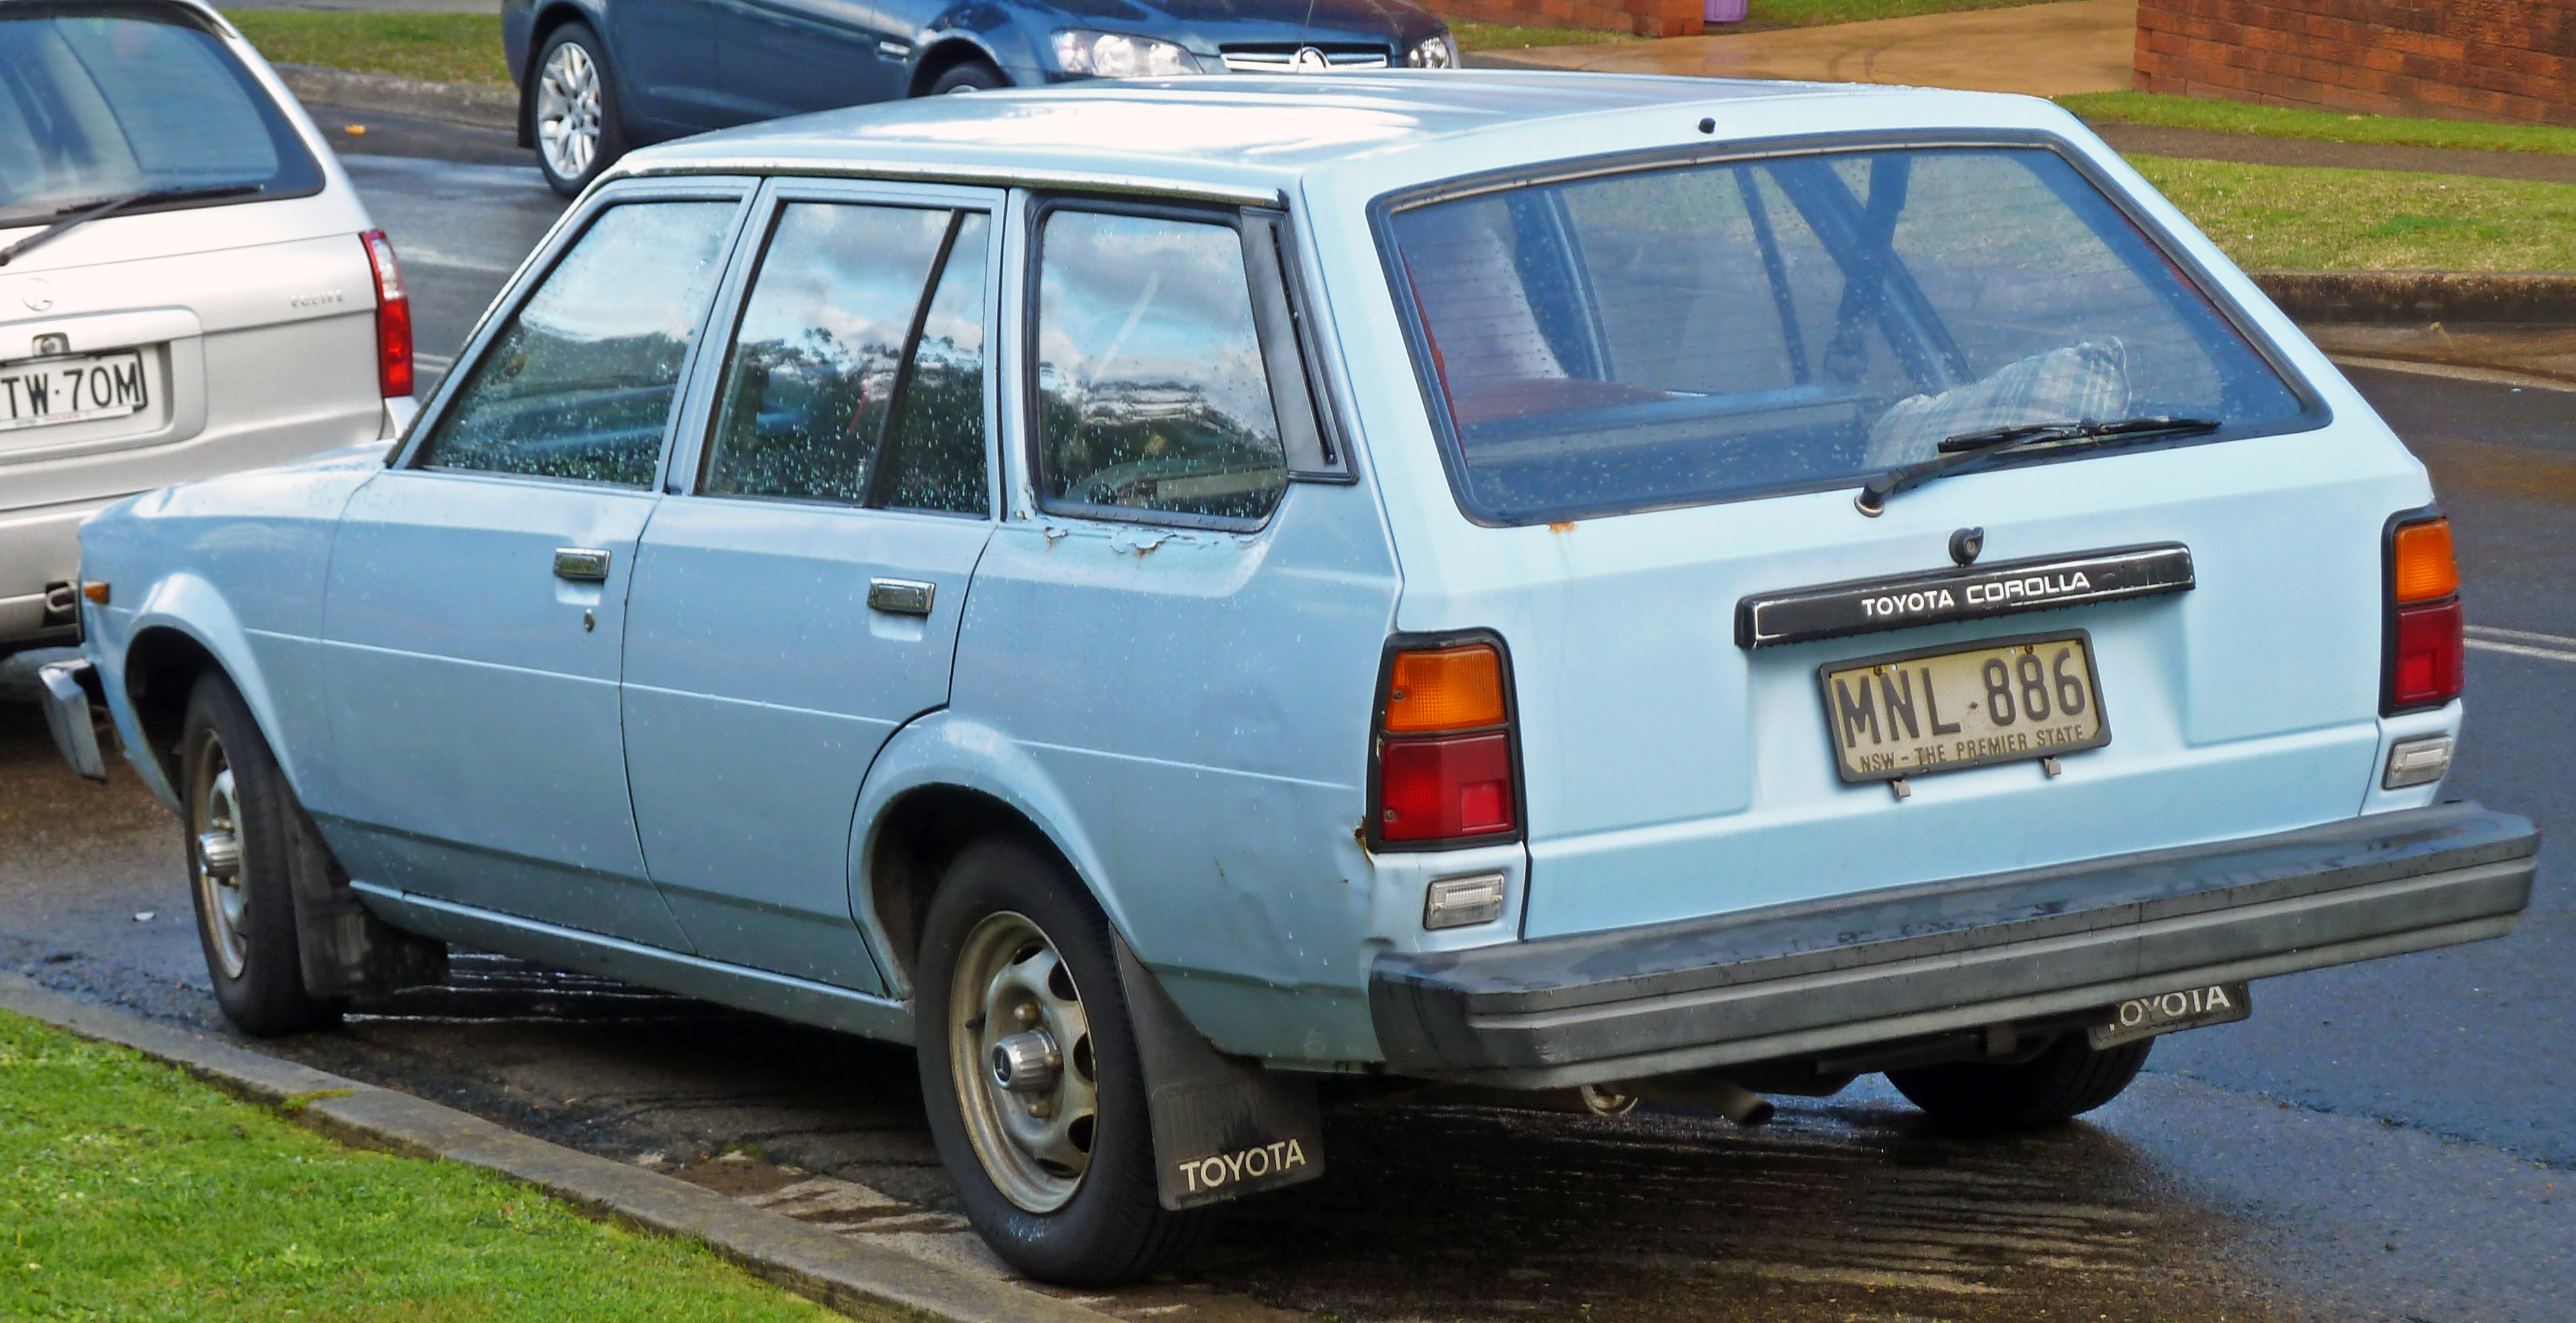 Good File:1980 1983 Toyota Corolla (KE70) Station Wagon 02